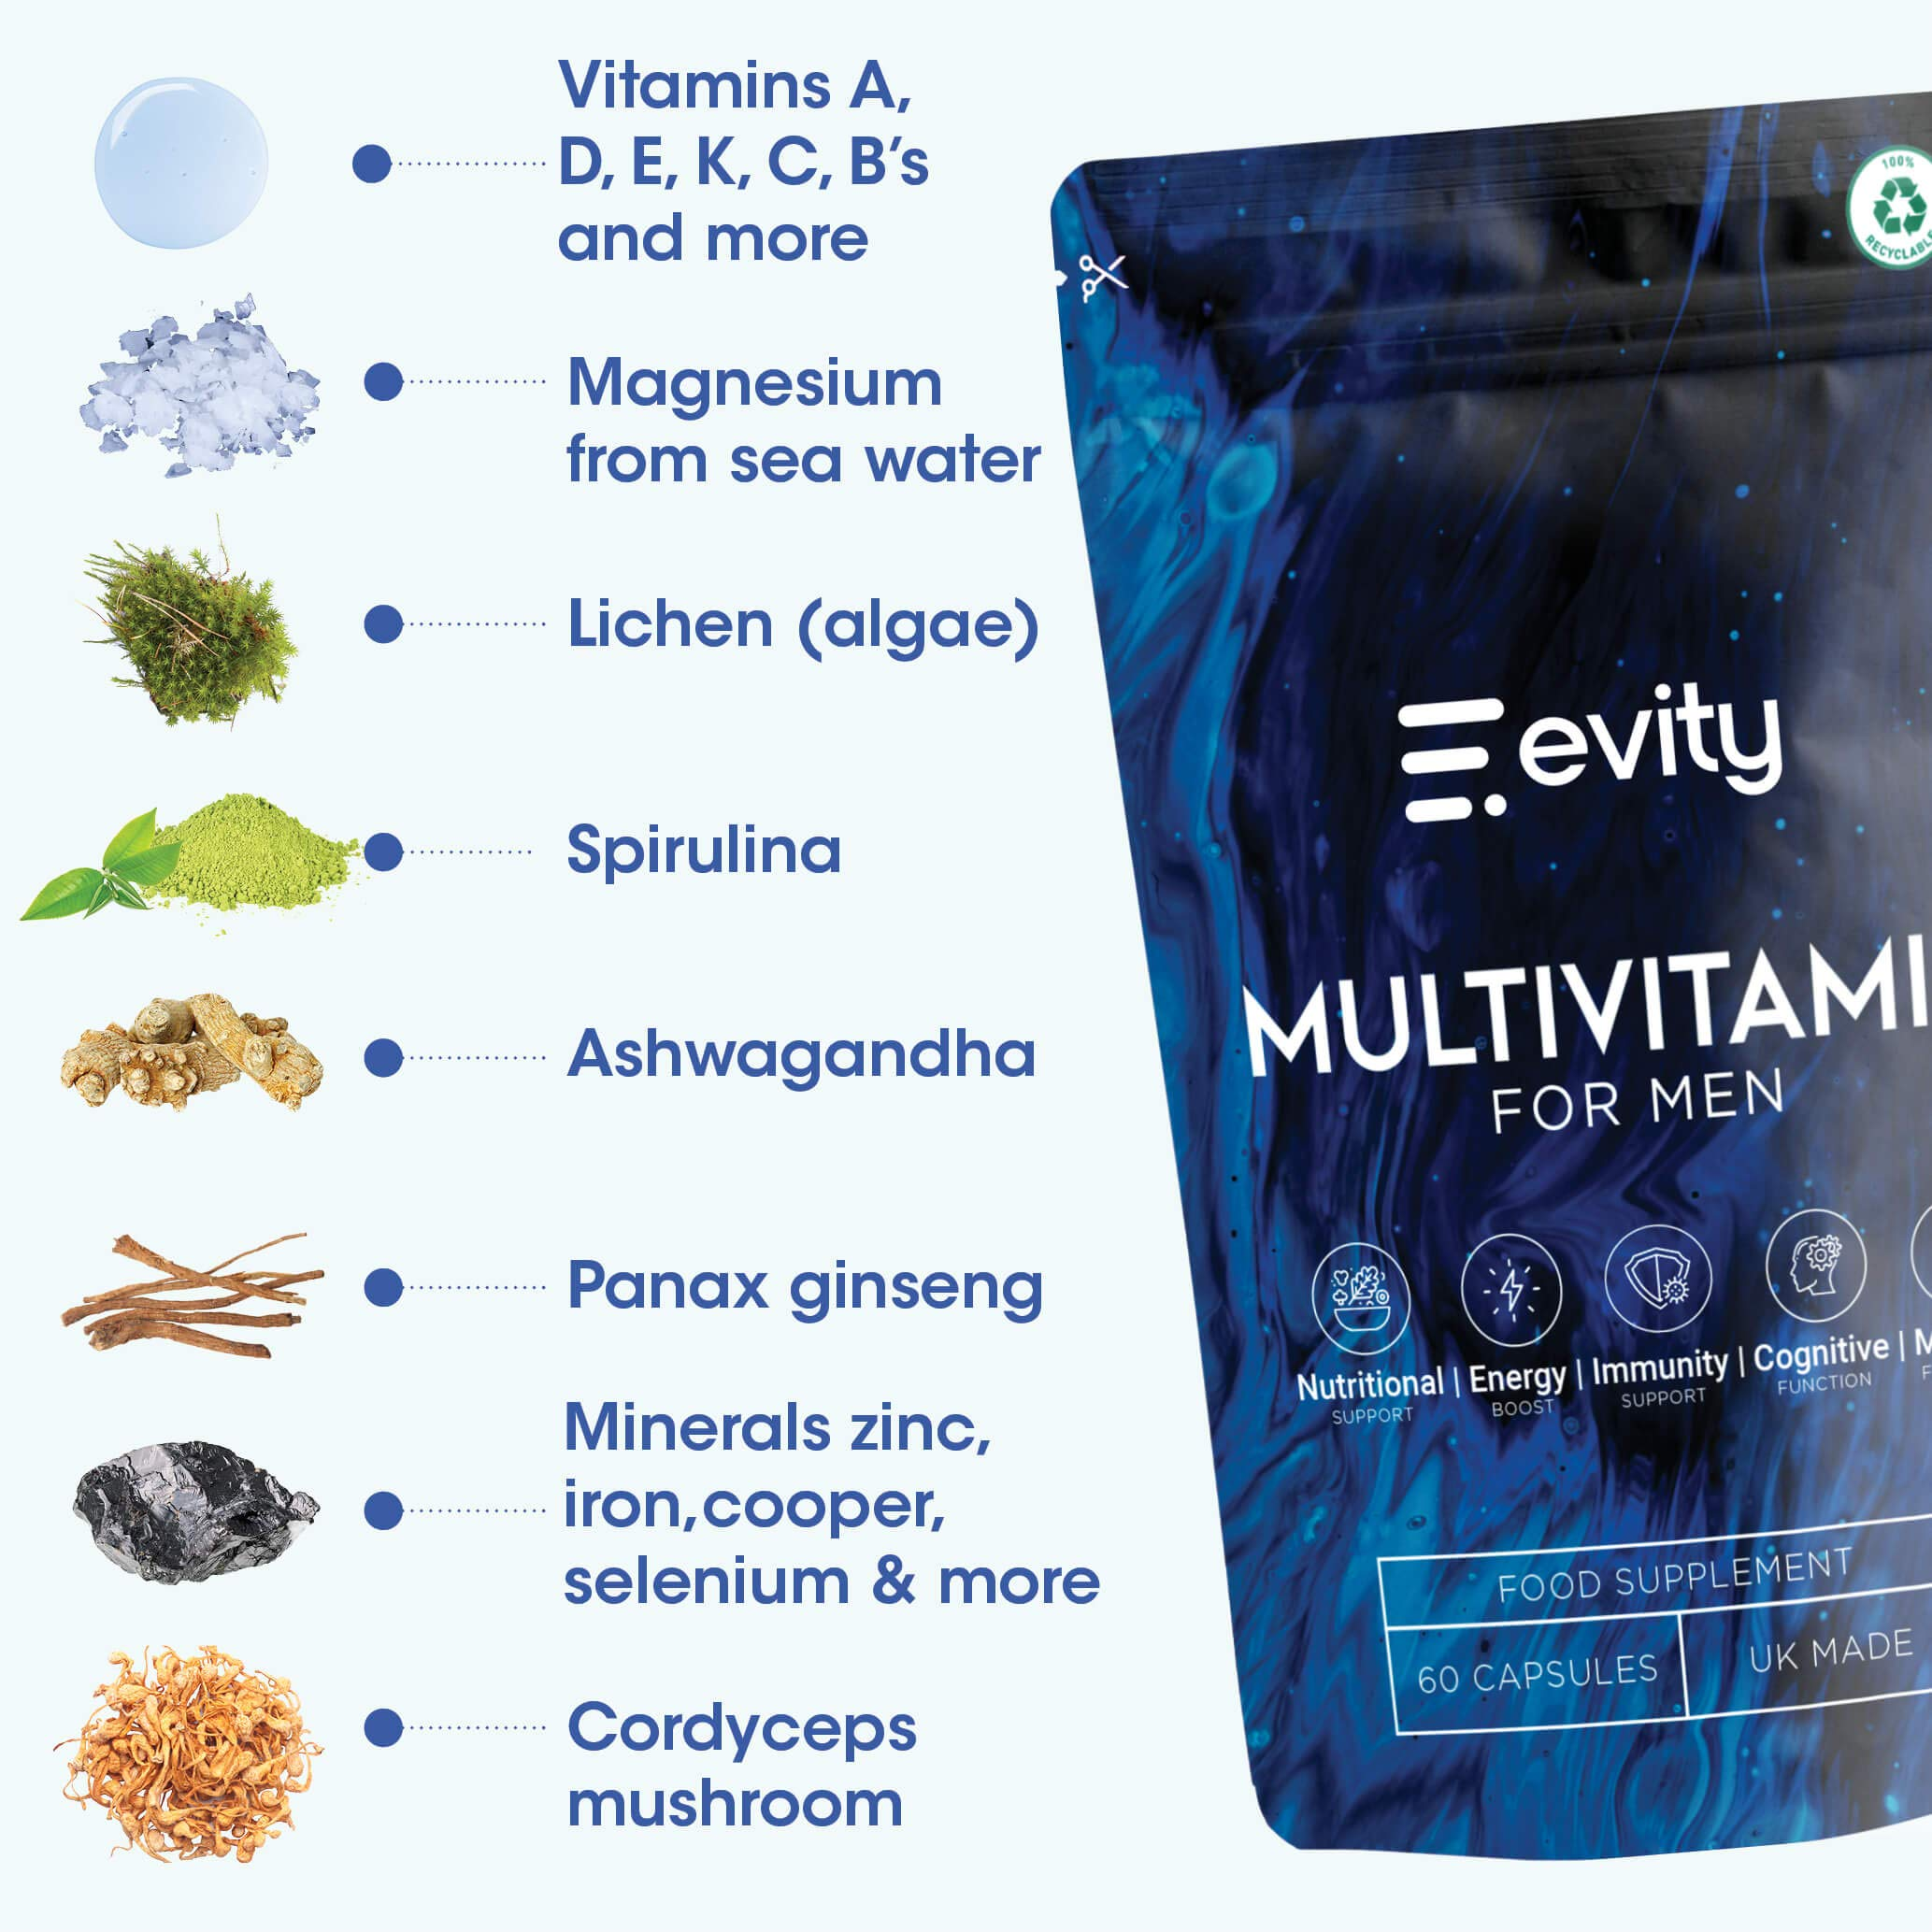 Multivitamin & Multimineral for Men | Cover Your Nutritional Bases | Nutrition You Can Believe in | 60 Capsules | Vegan | Evity